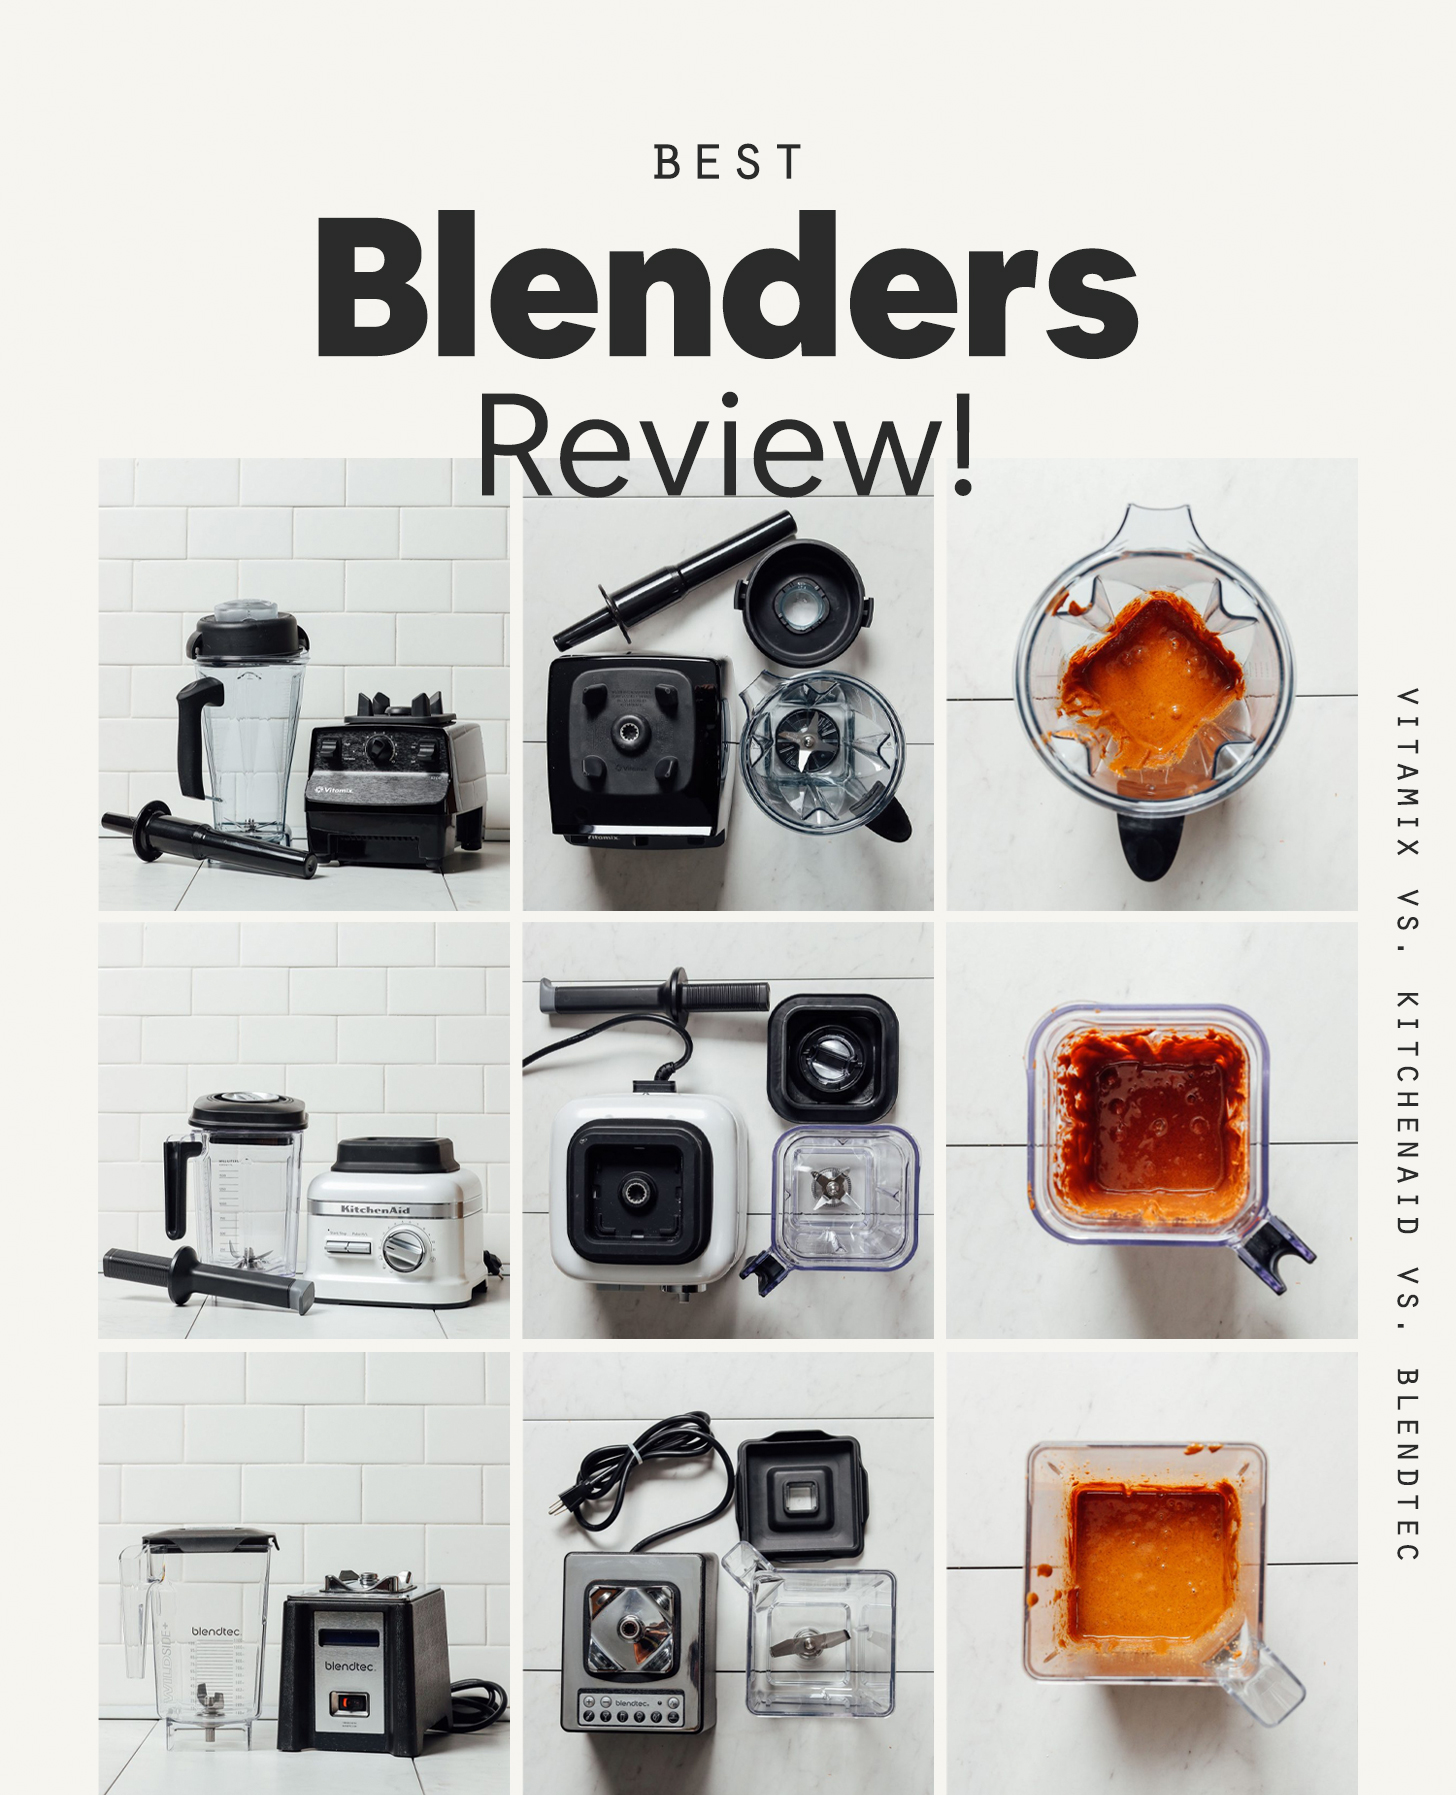 Compilation of photos tested in our Best Blenders Review